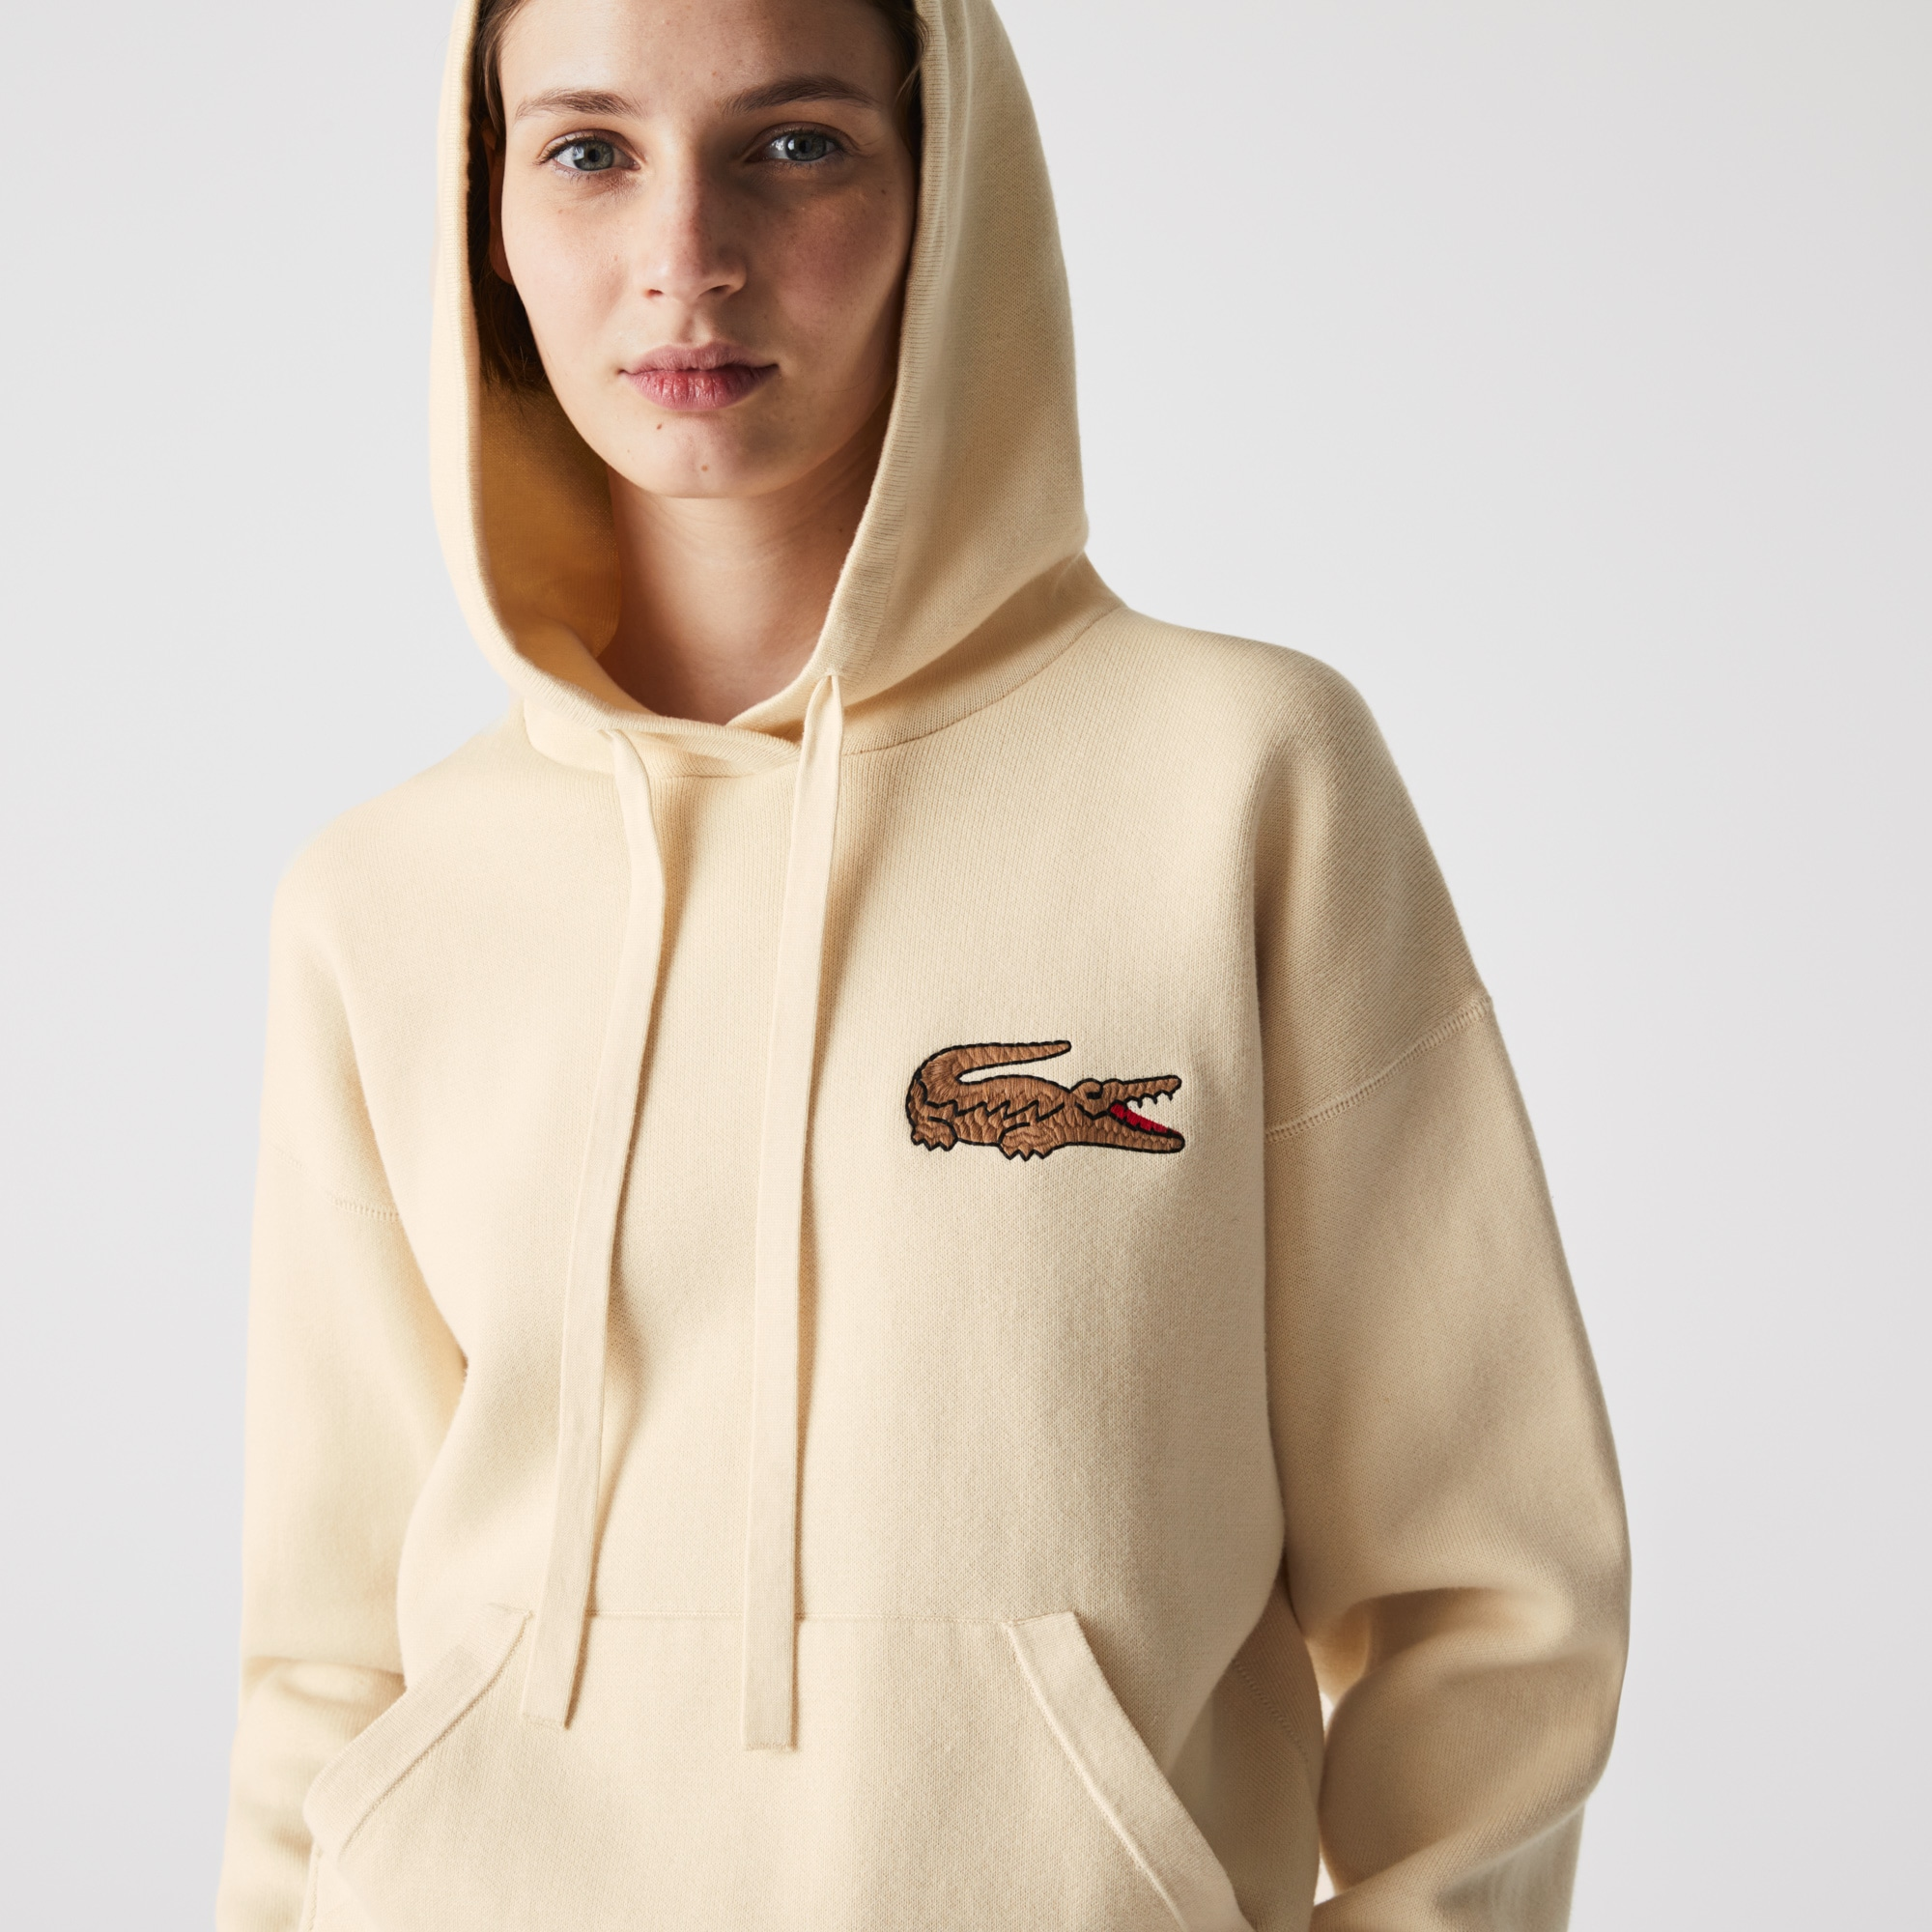 Lacoste Women's Relaxed Embroidered Croc Hooded Cotton Sweater